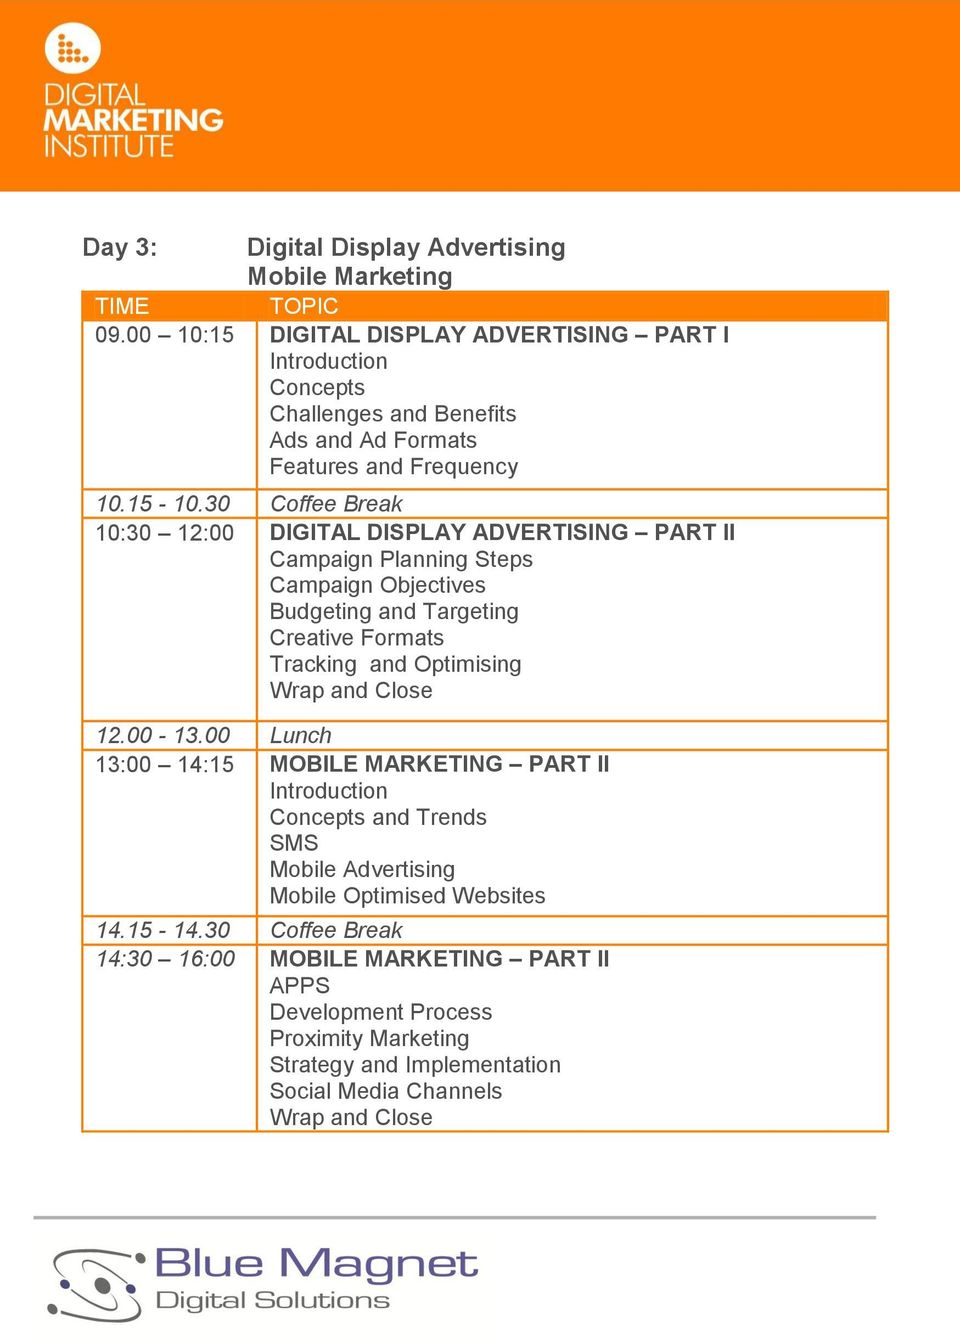 DISPLAY ADVERTISING PART II Campaign Planning Steps Campaign Objectives Budgeting and Targeting Creative Formats Tracking and Optimising